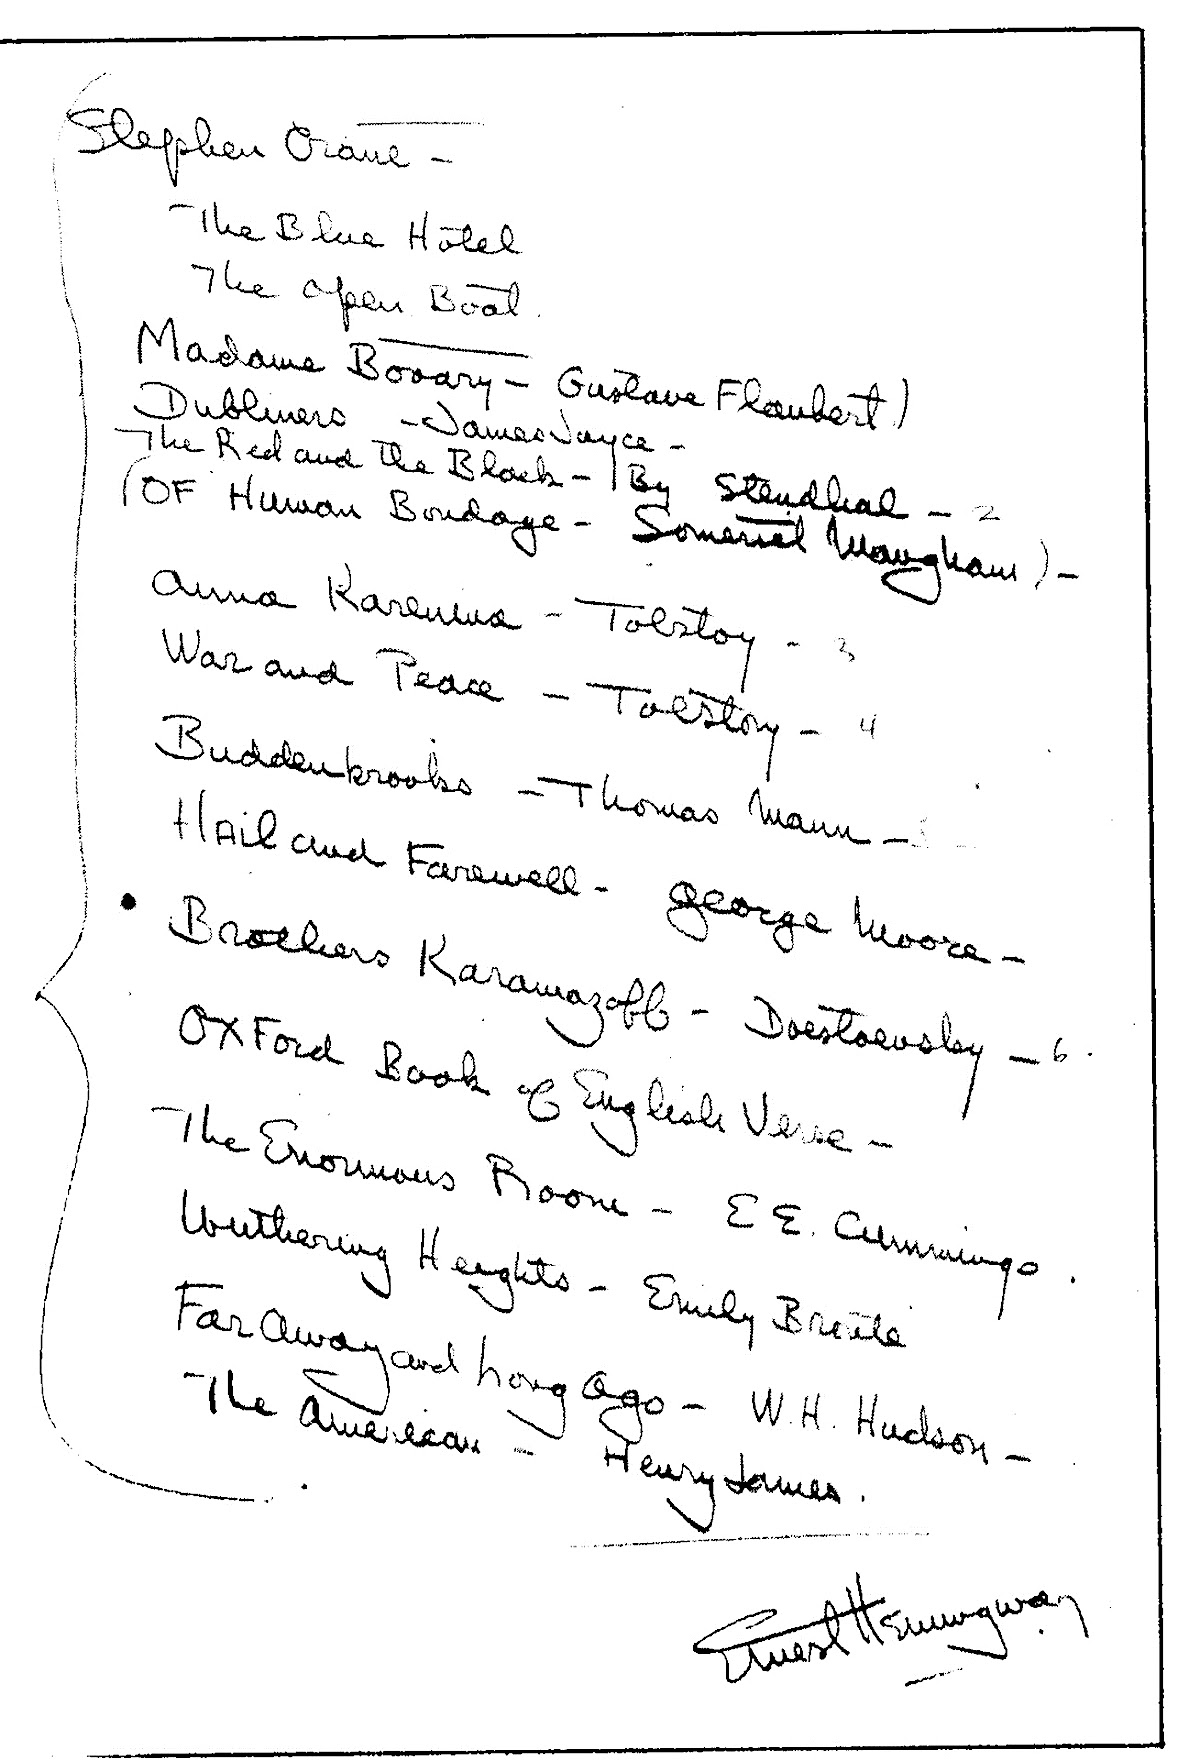 Ernest Hemmingway Reading List